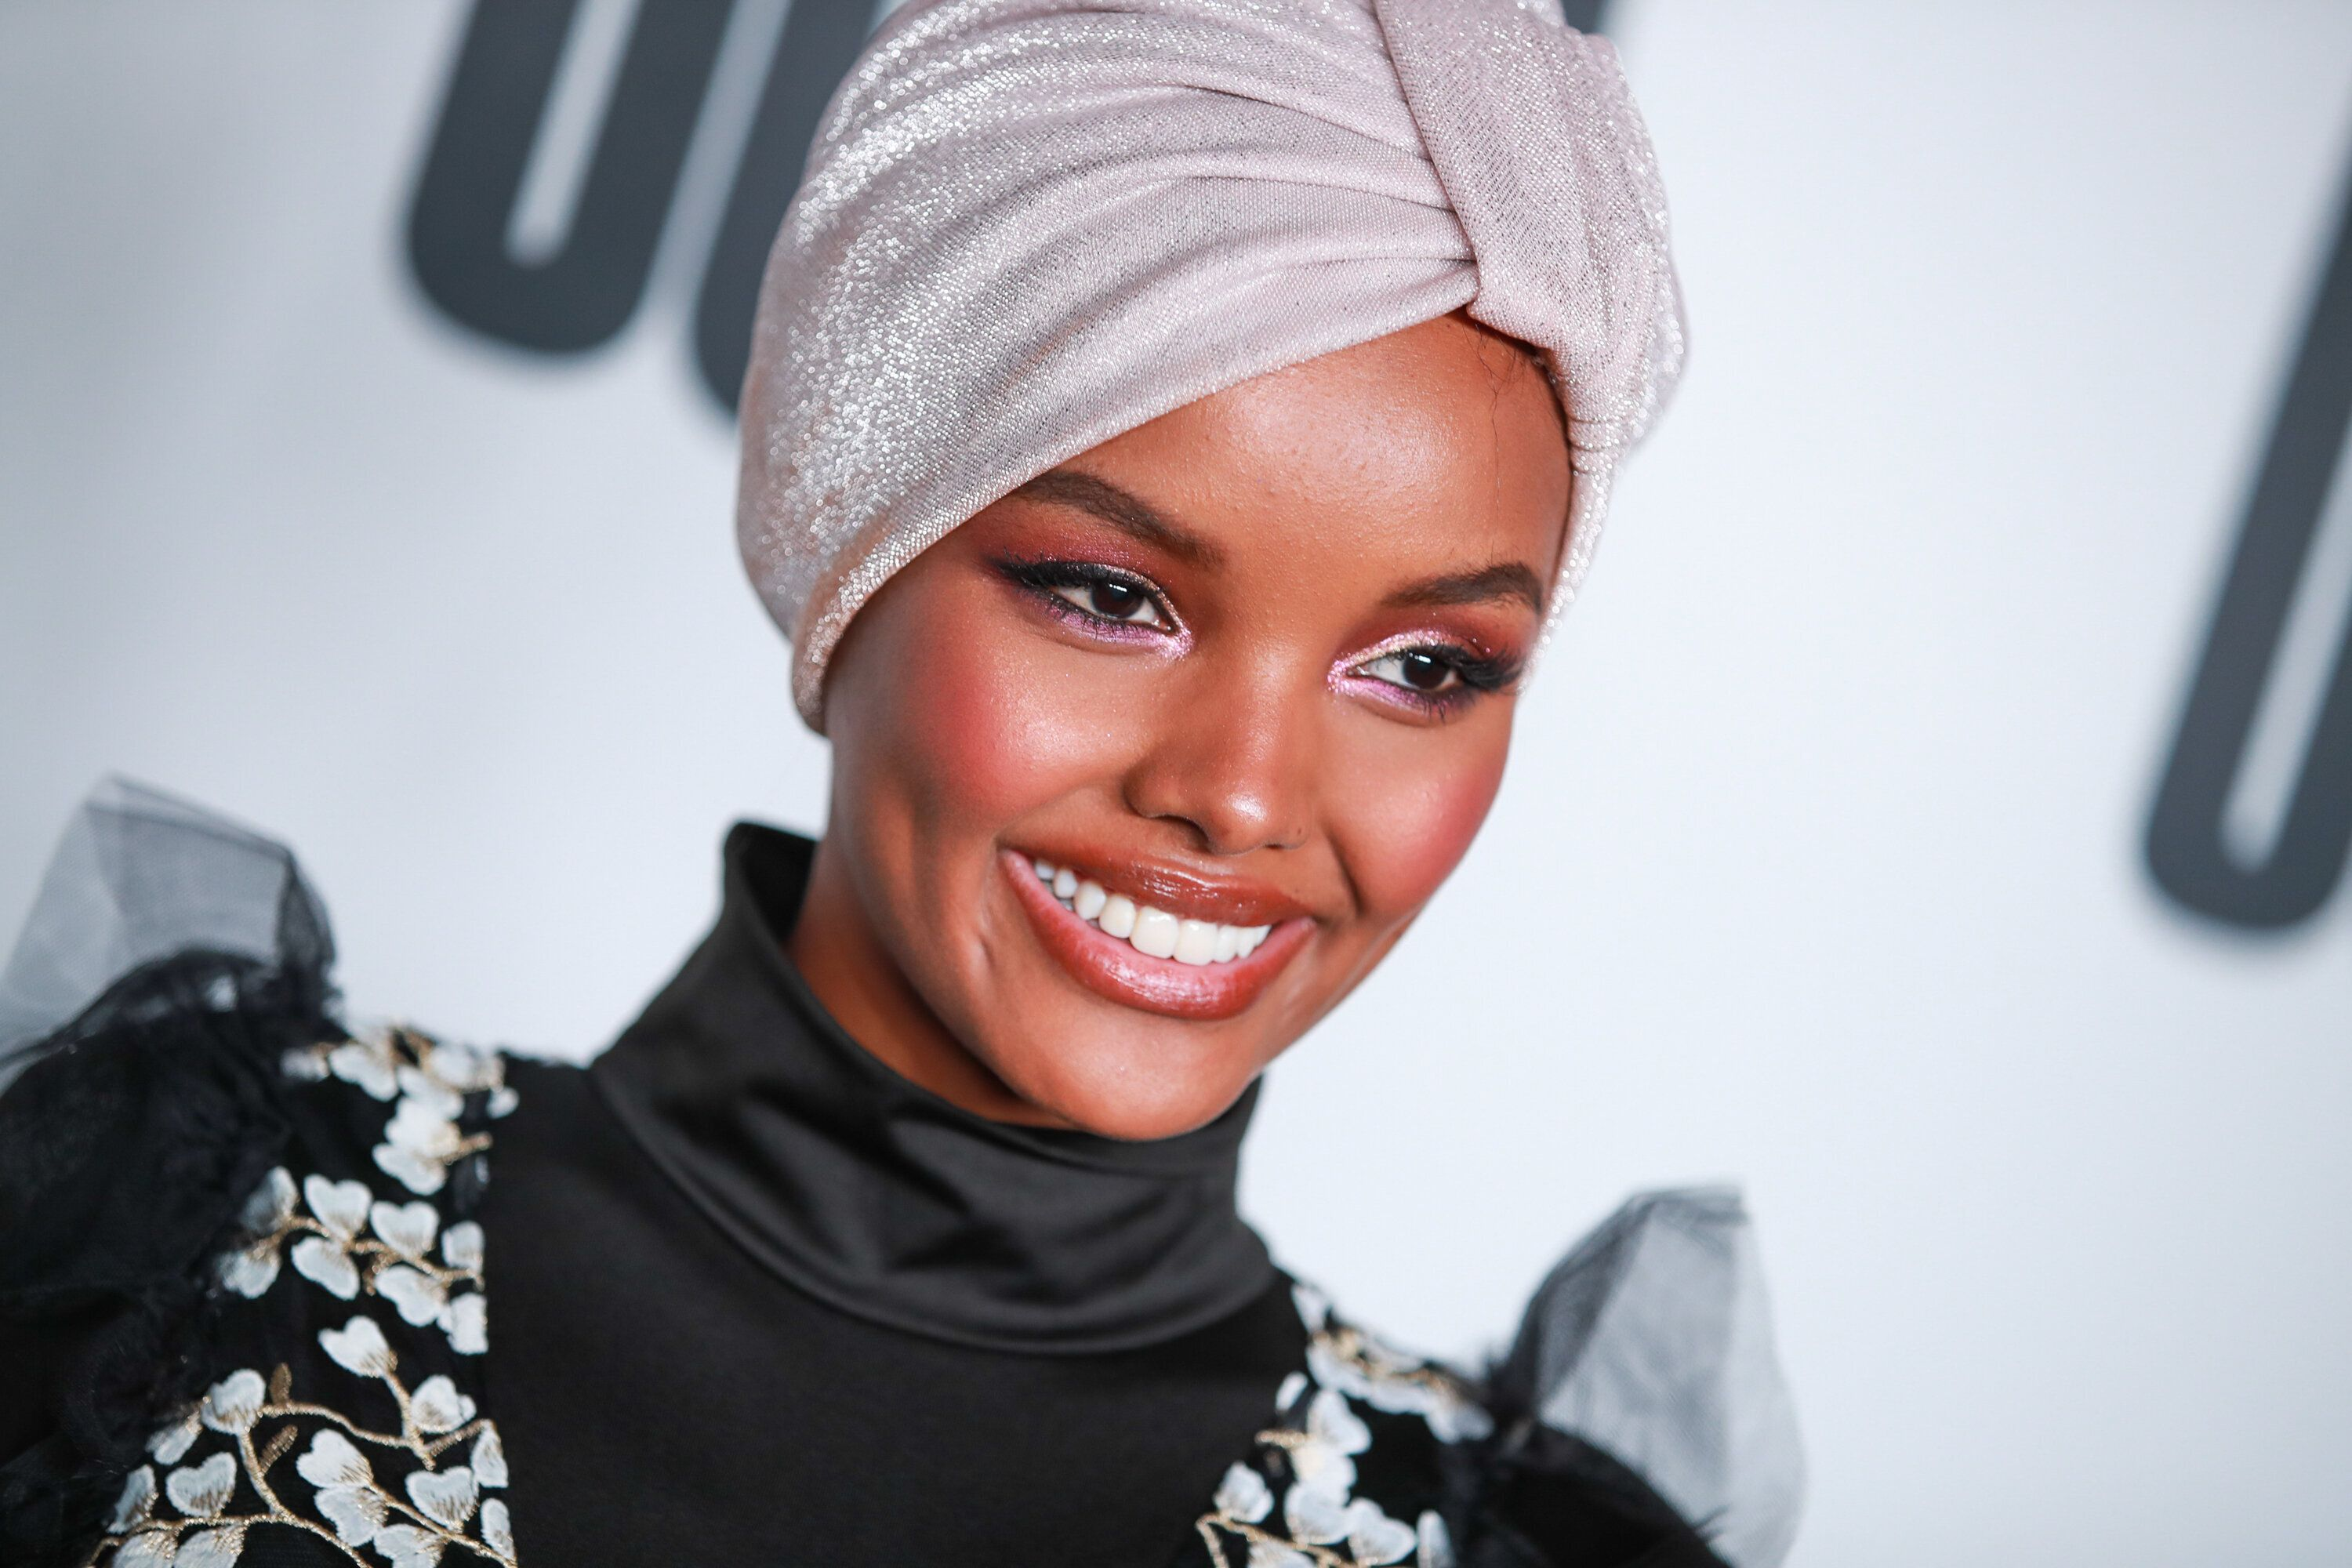 """LOS ANGELES, CALIFORNIA - APRIL 25: Halima Aden attends House Of Uoma presents the launch of Uoma Beauty - The World's First """"Afropolitan"""" Makeup Brand at NeueHouse Hollywood on April 25, 2019 in Los Angeles, California. (Photo by Rich Fury/Getty Images)"""